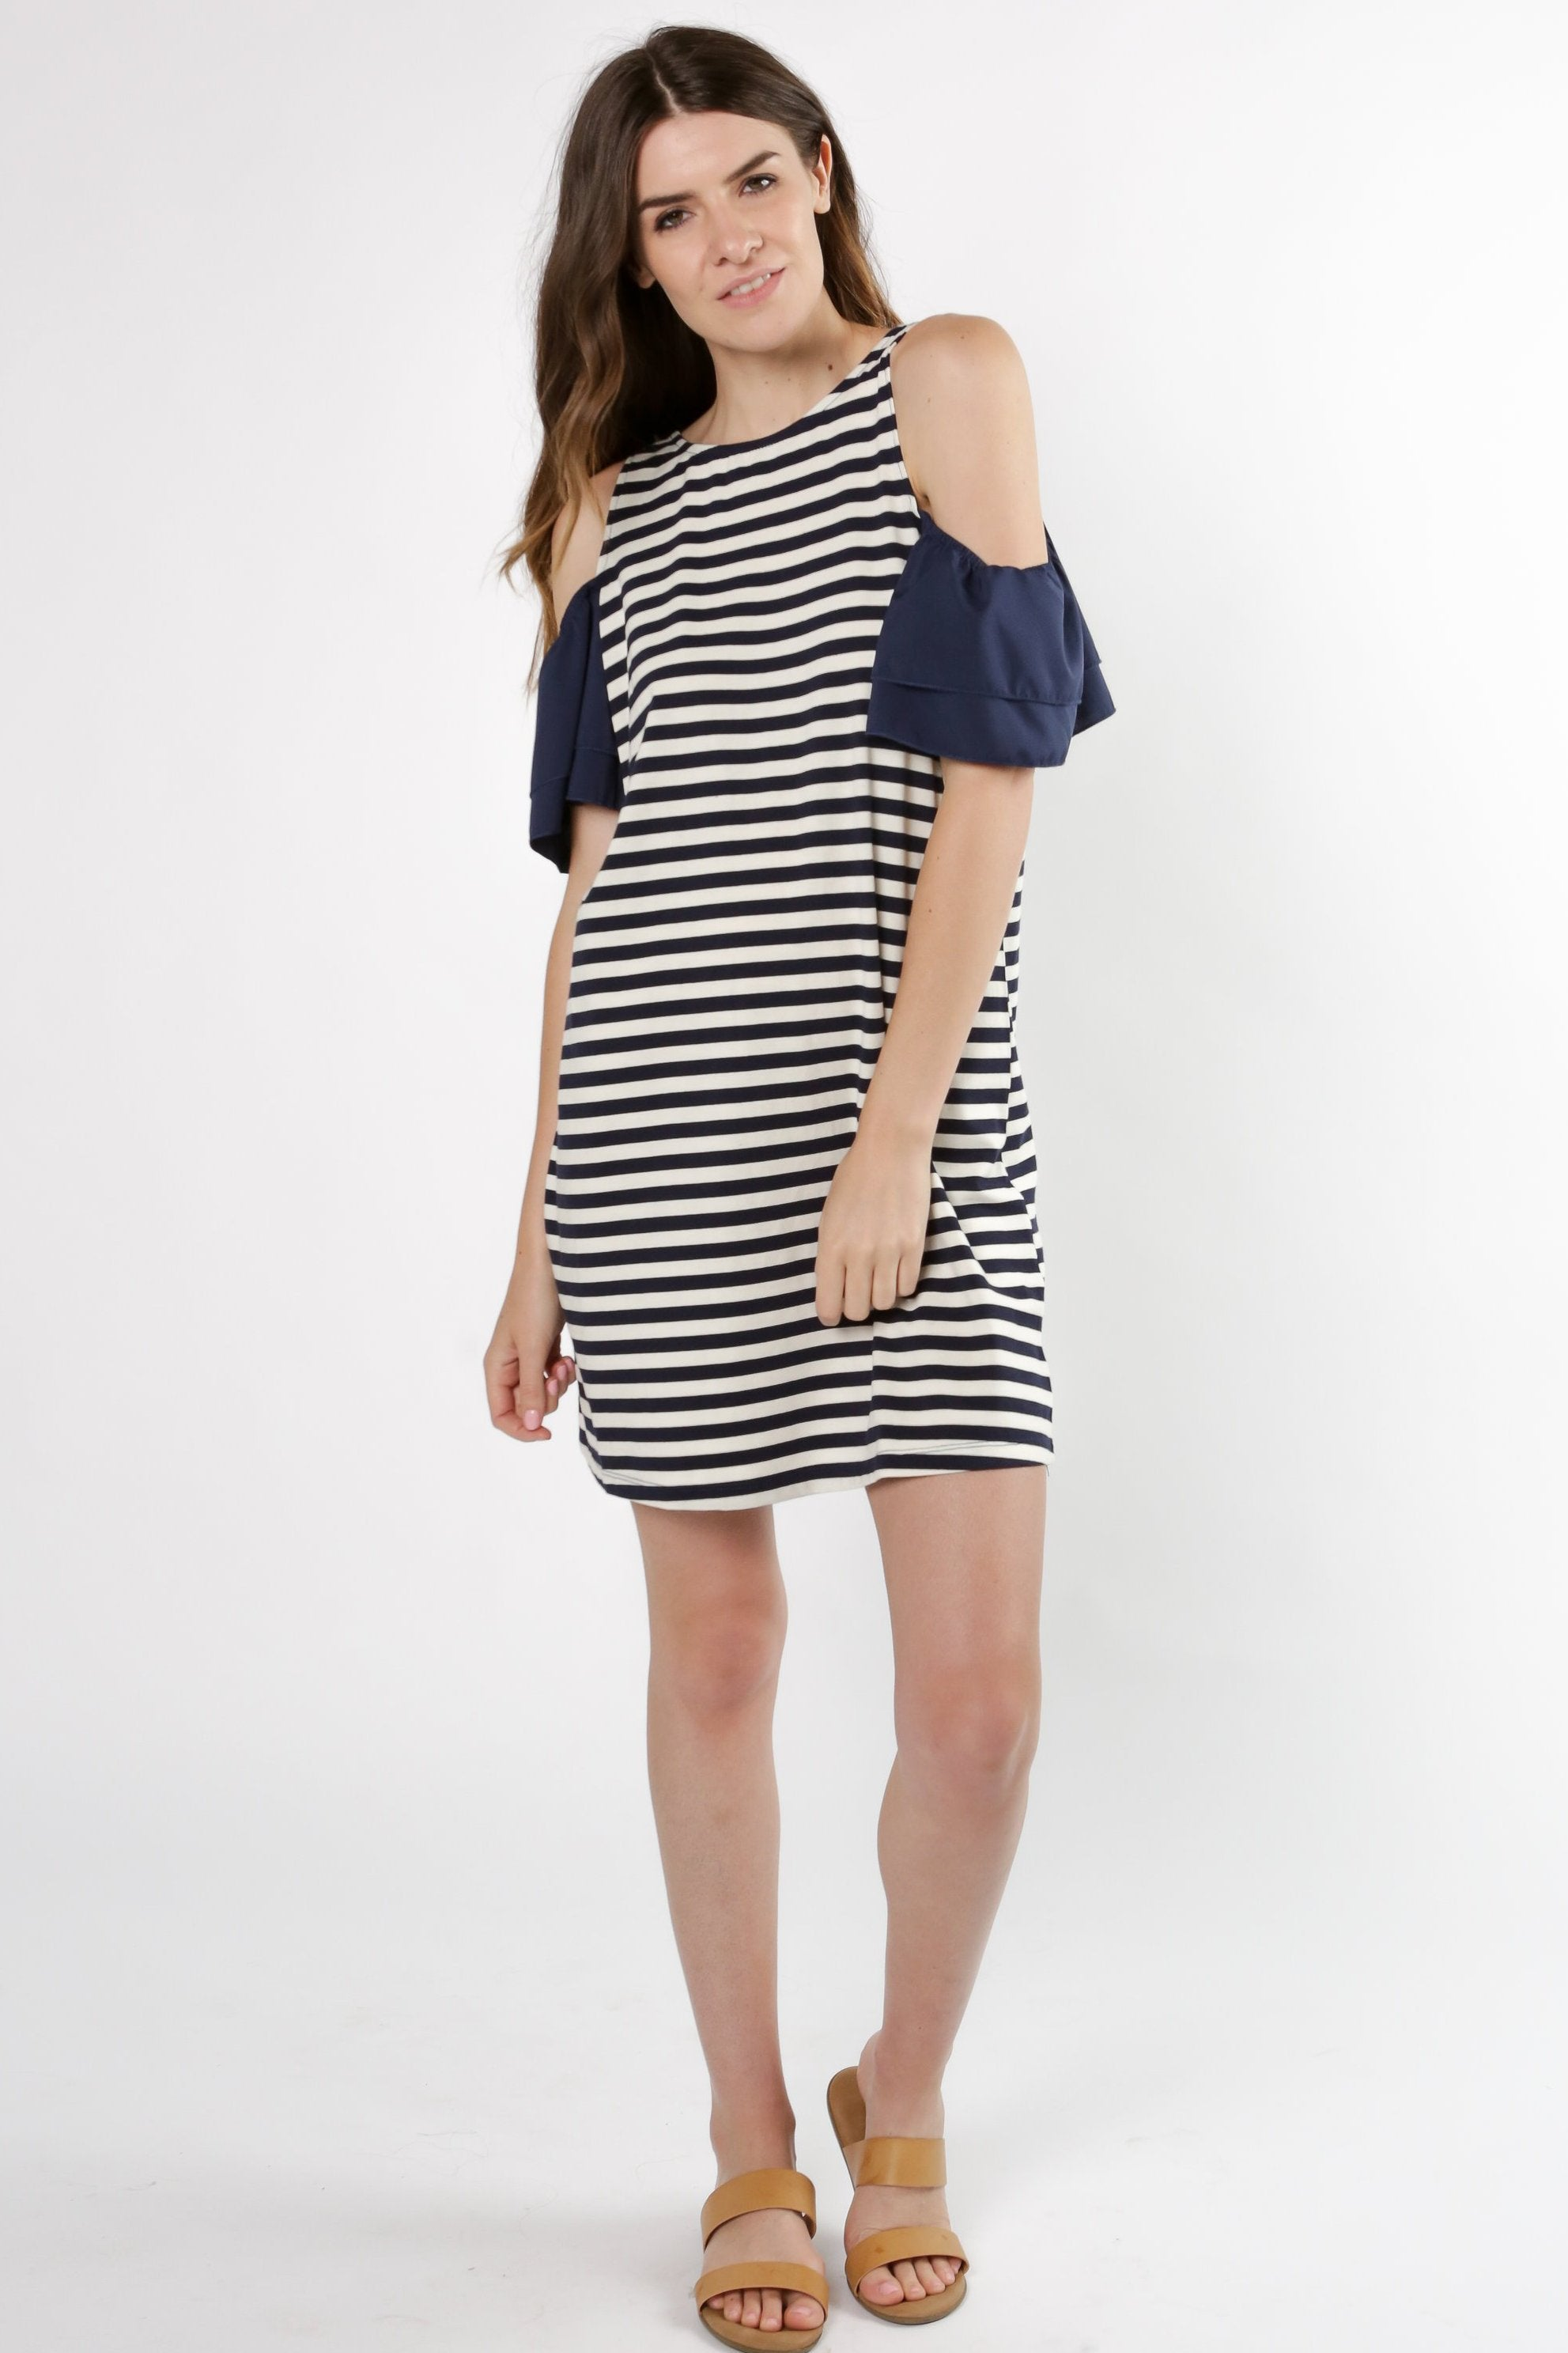 Camry Cold Shoulder Dress - Navy